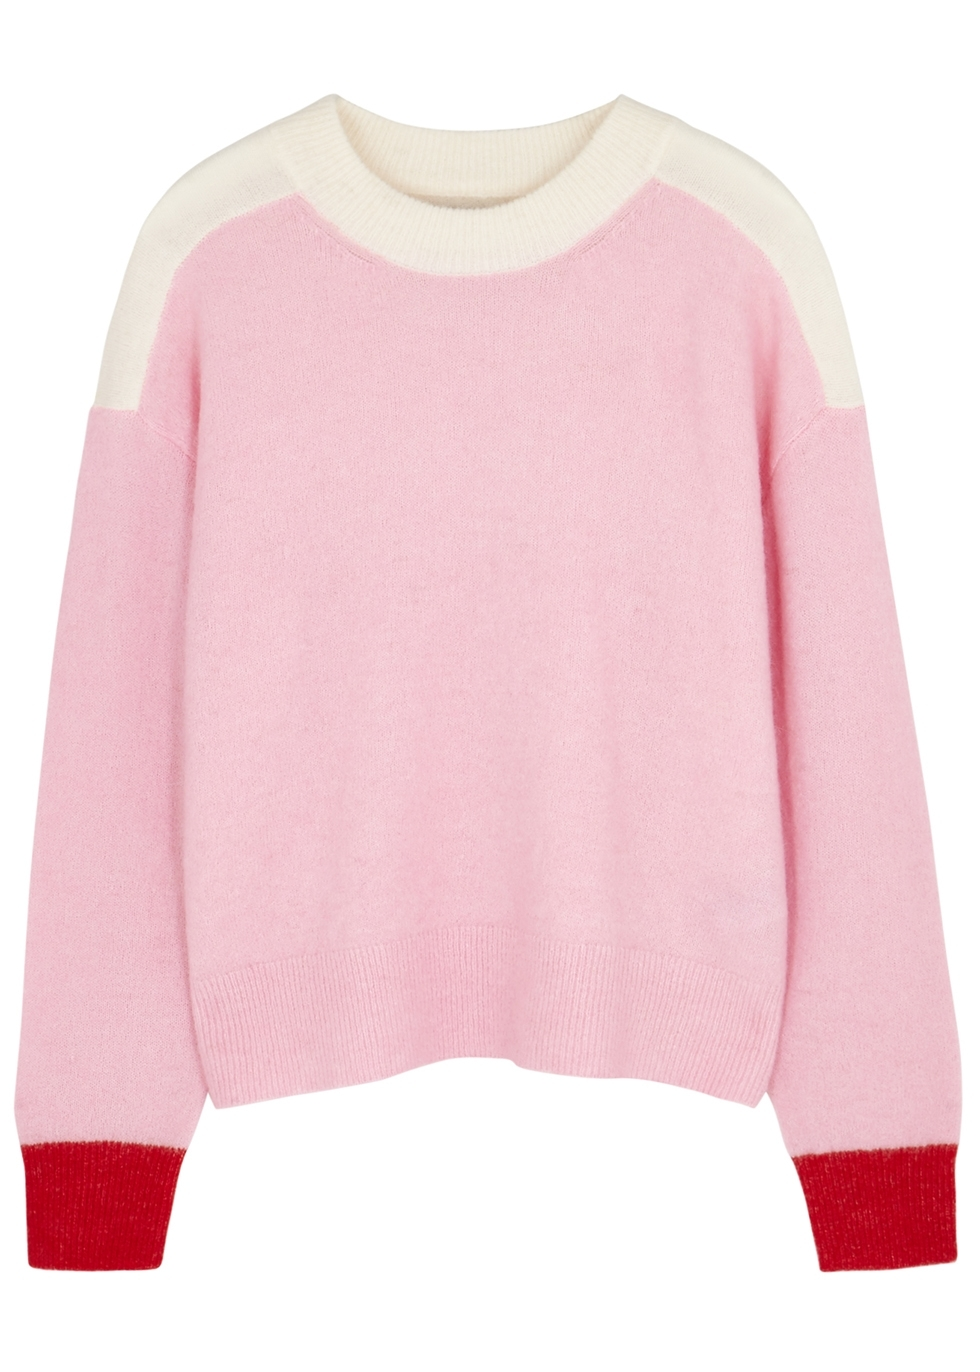 52fe9ce271f Women s Designer Knitwear and Jumpers - Harvey Nichols